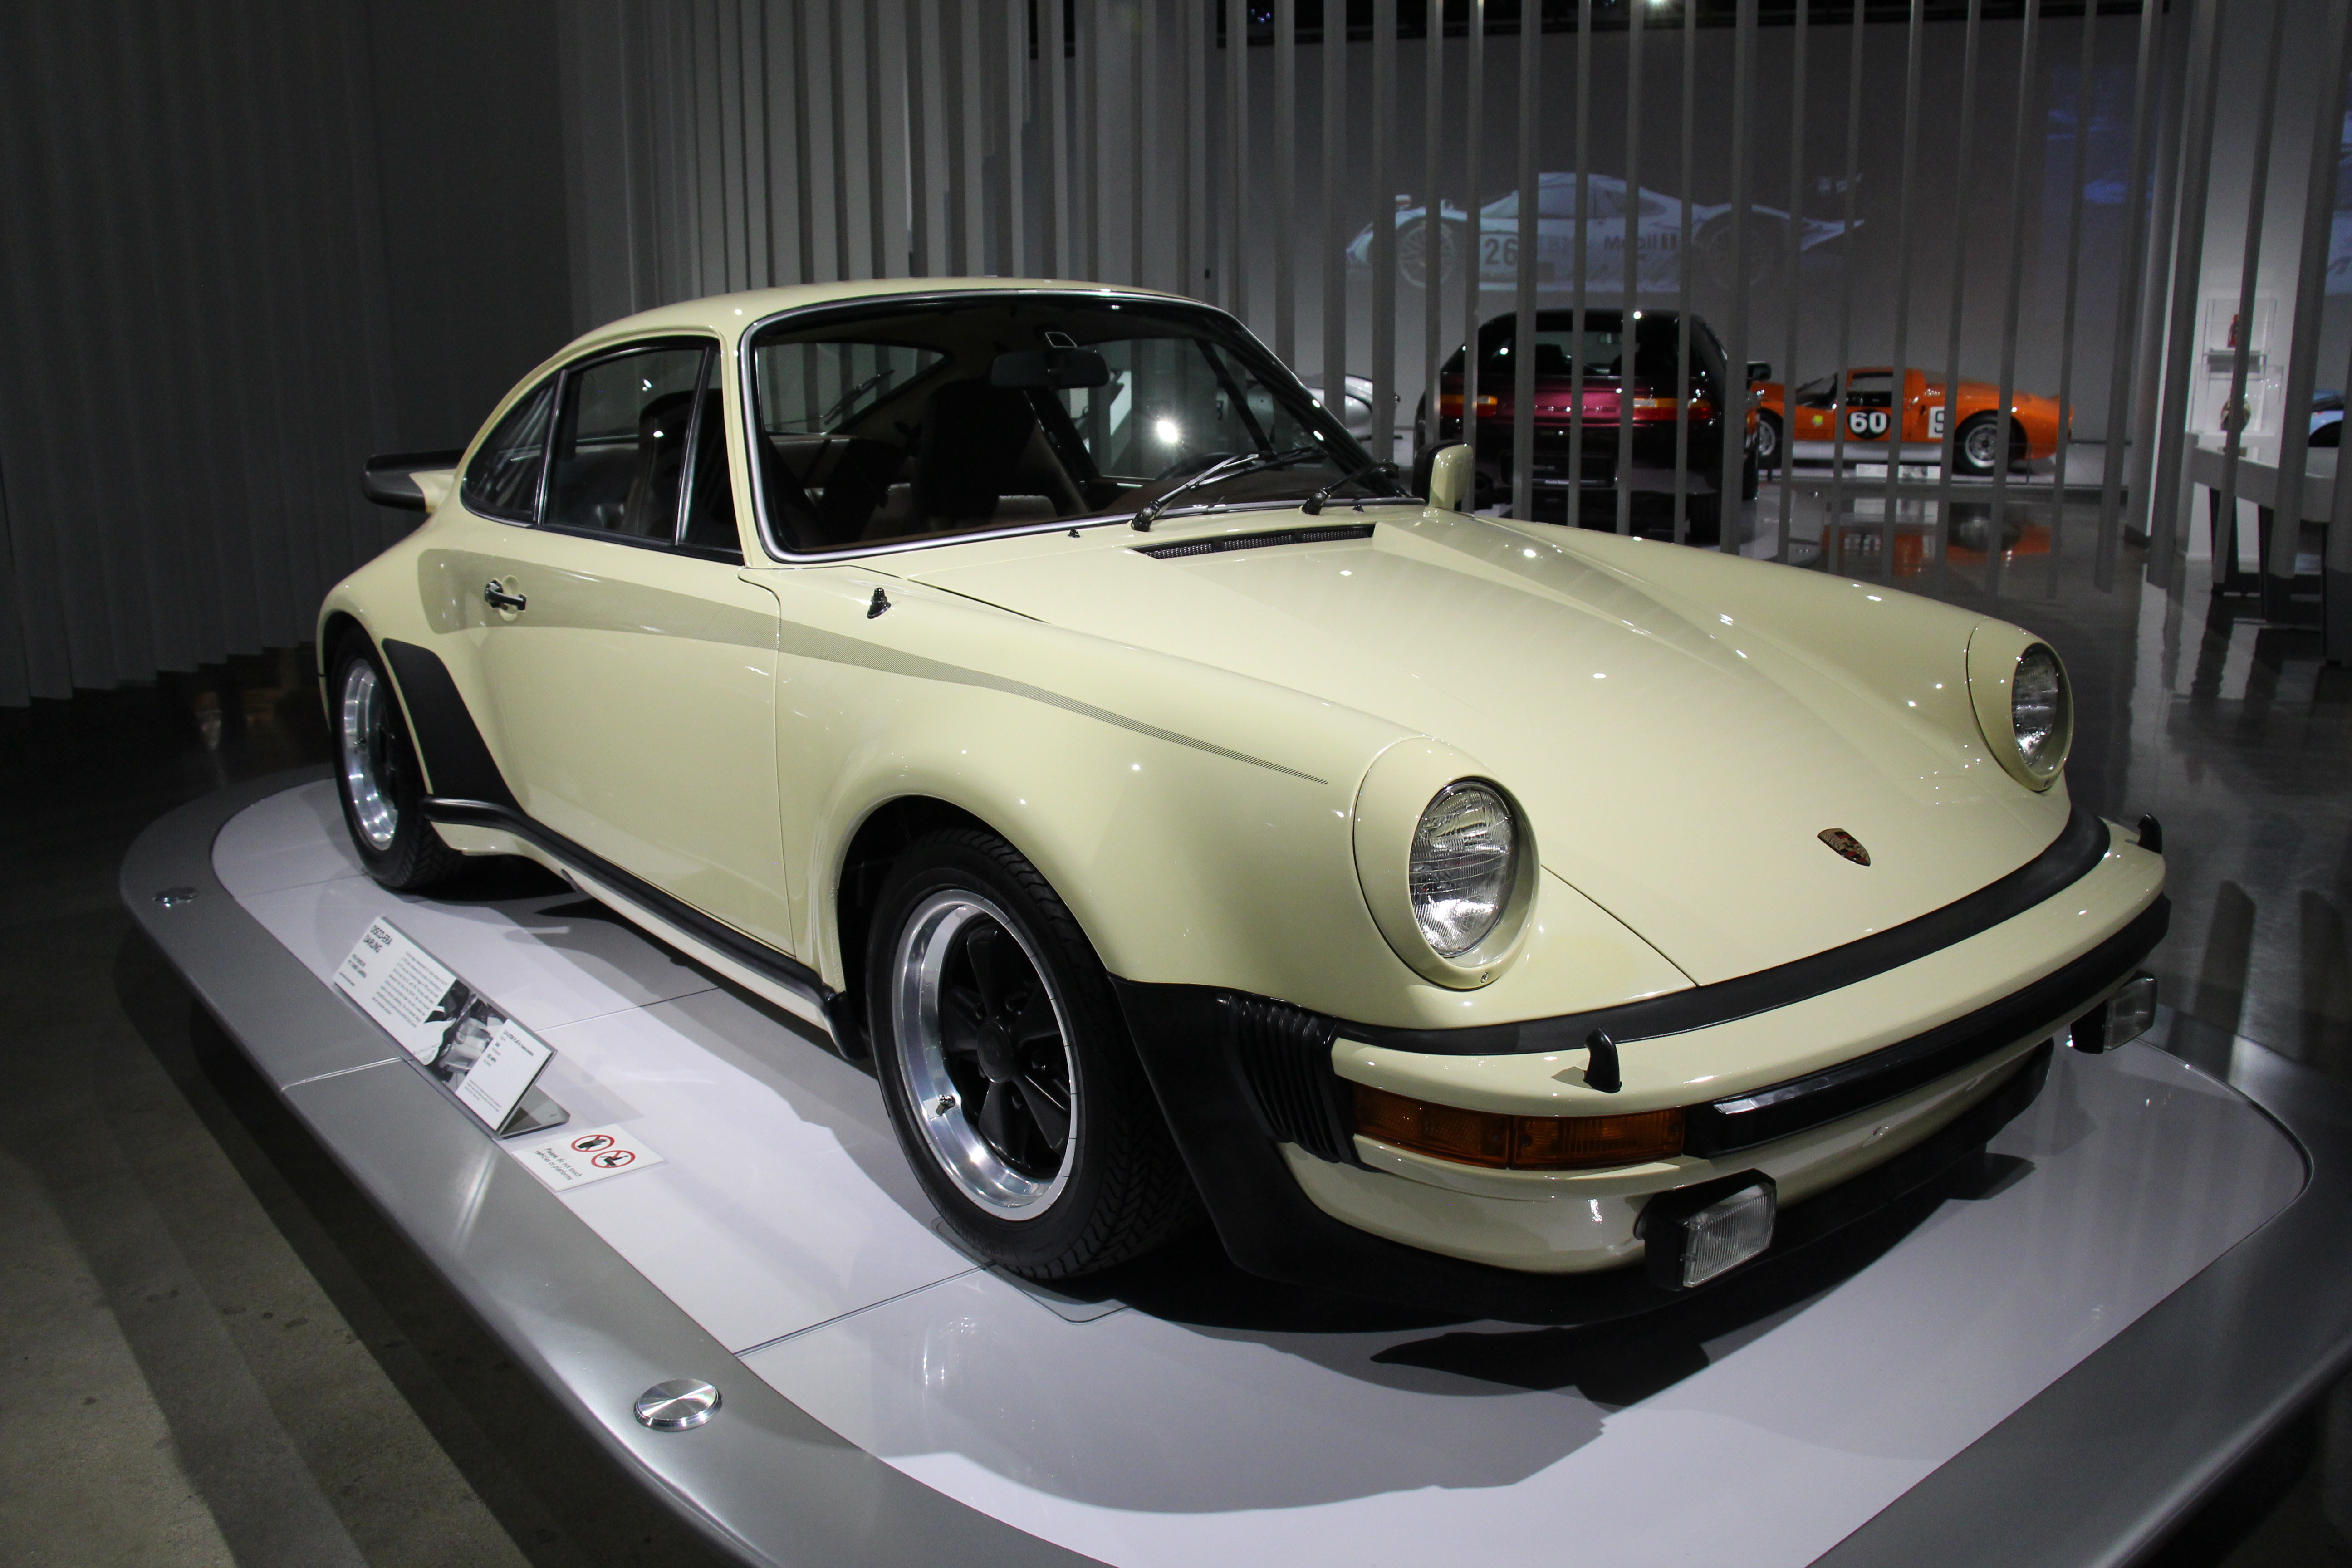 1976 Porsche 911 >> File 1976 Porsche 911 Turbo Carrera 42871386680 Jpg